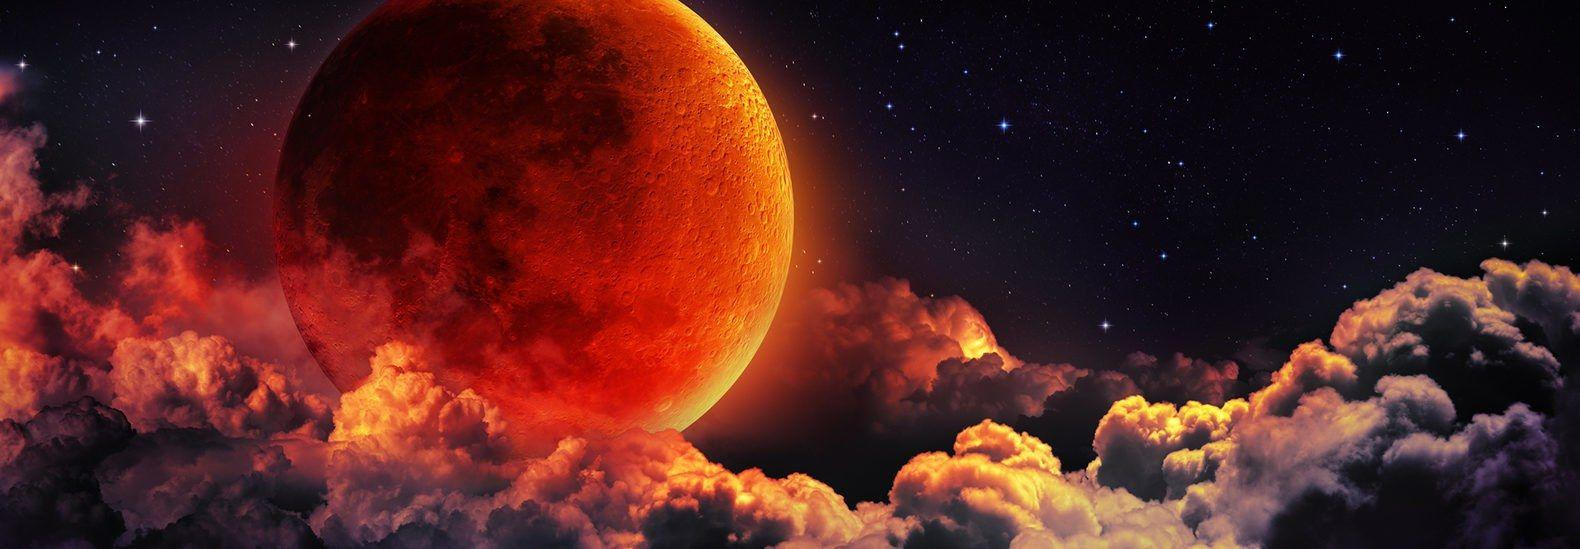 Super blue blood moon eclipse to occur next week for the first ...